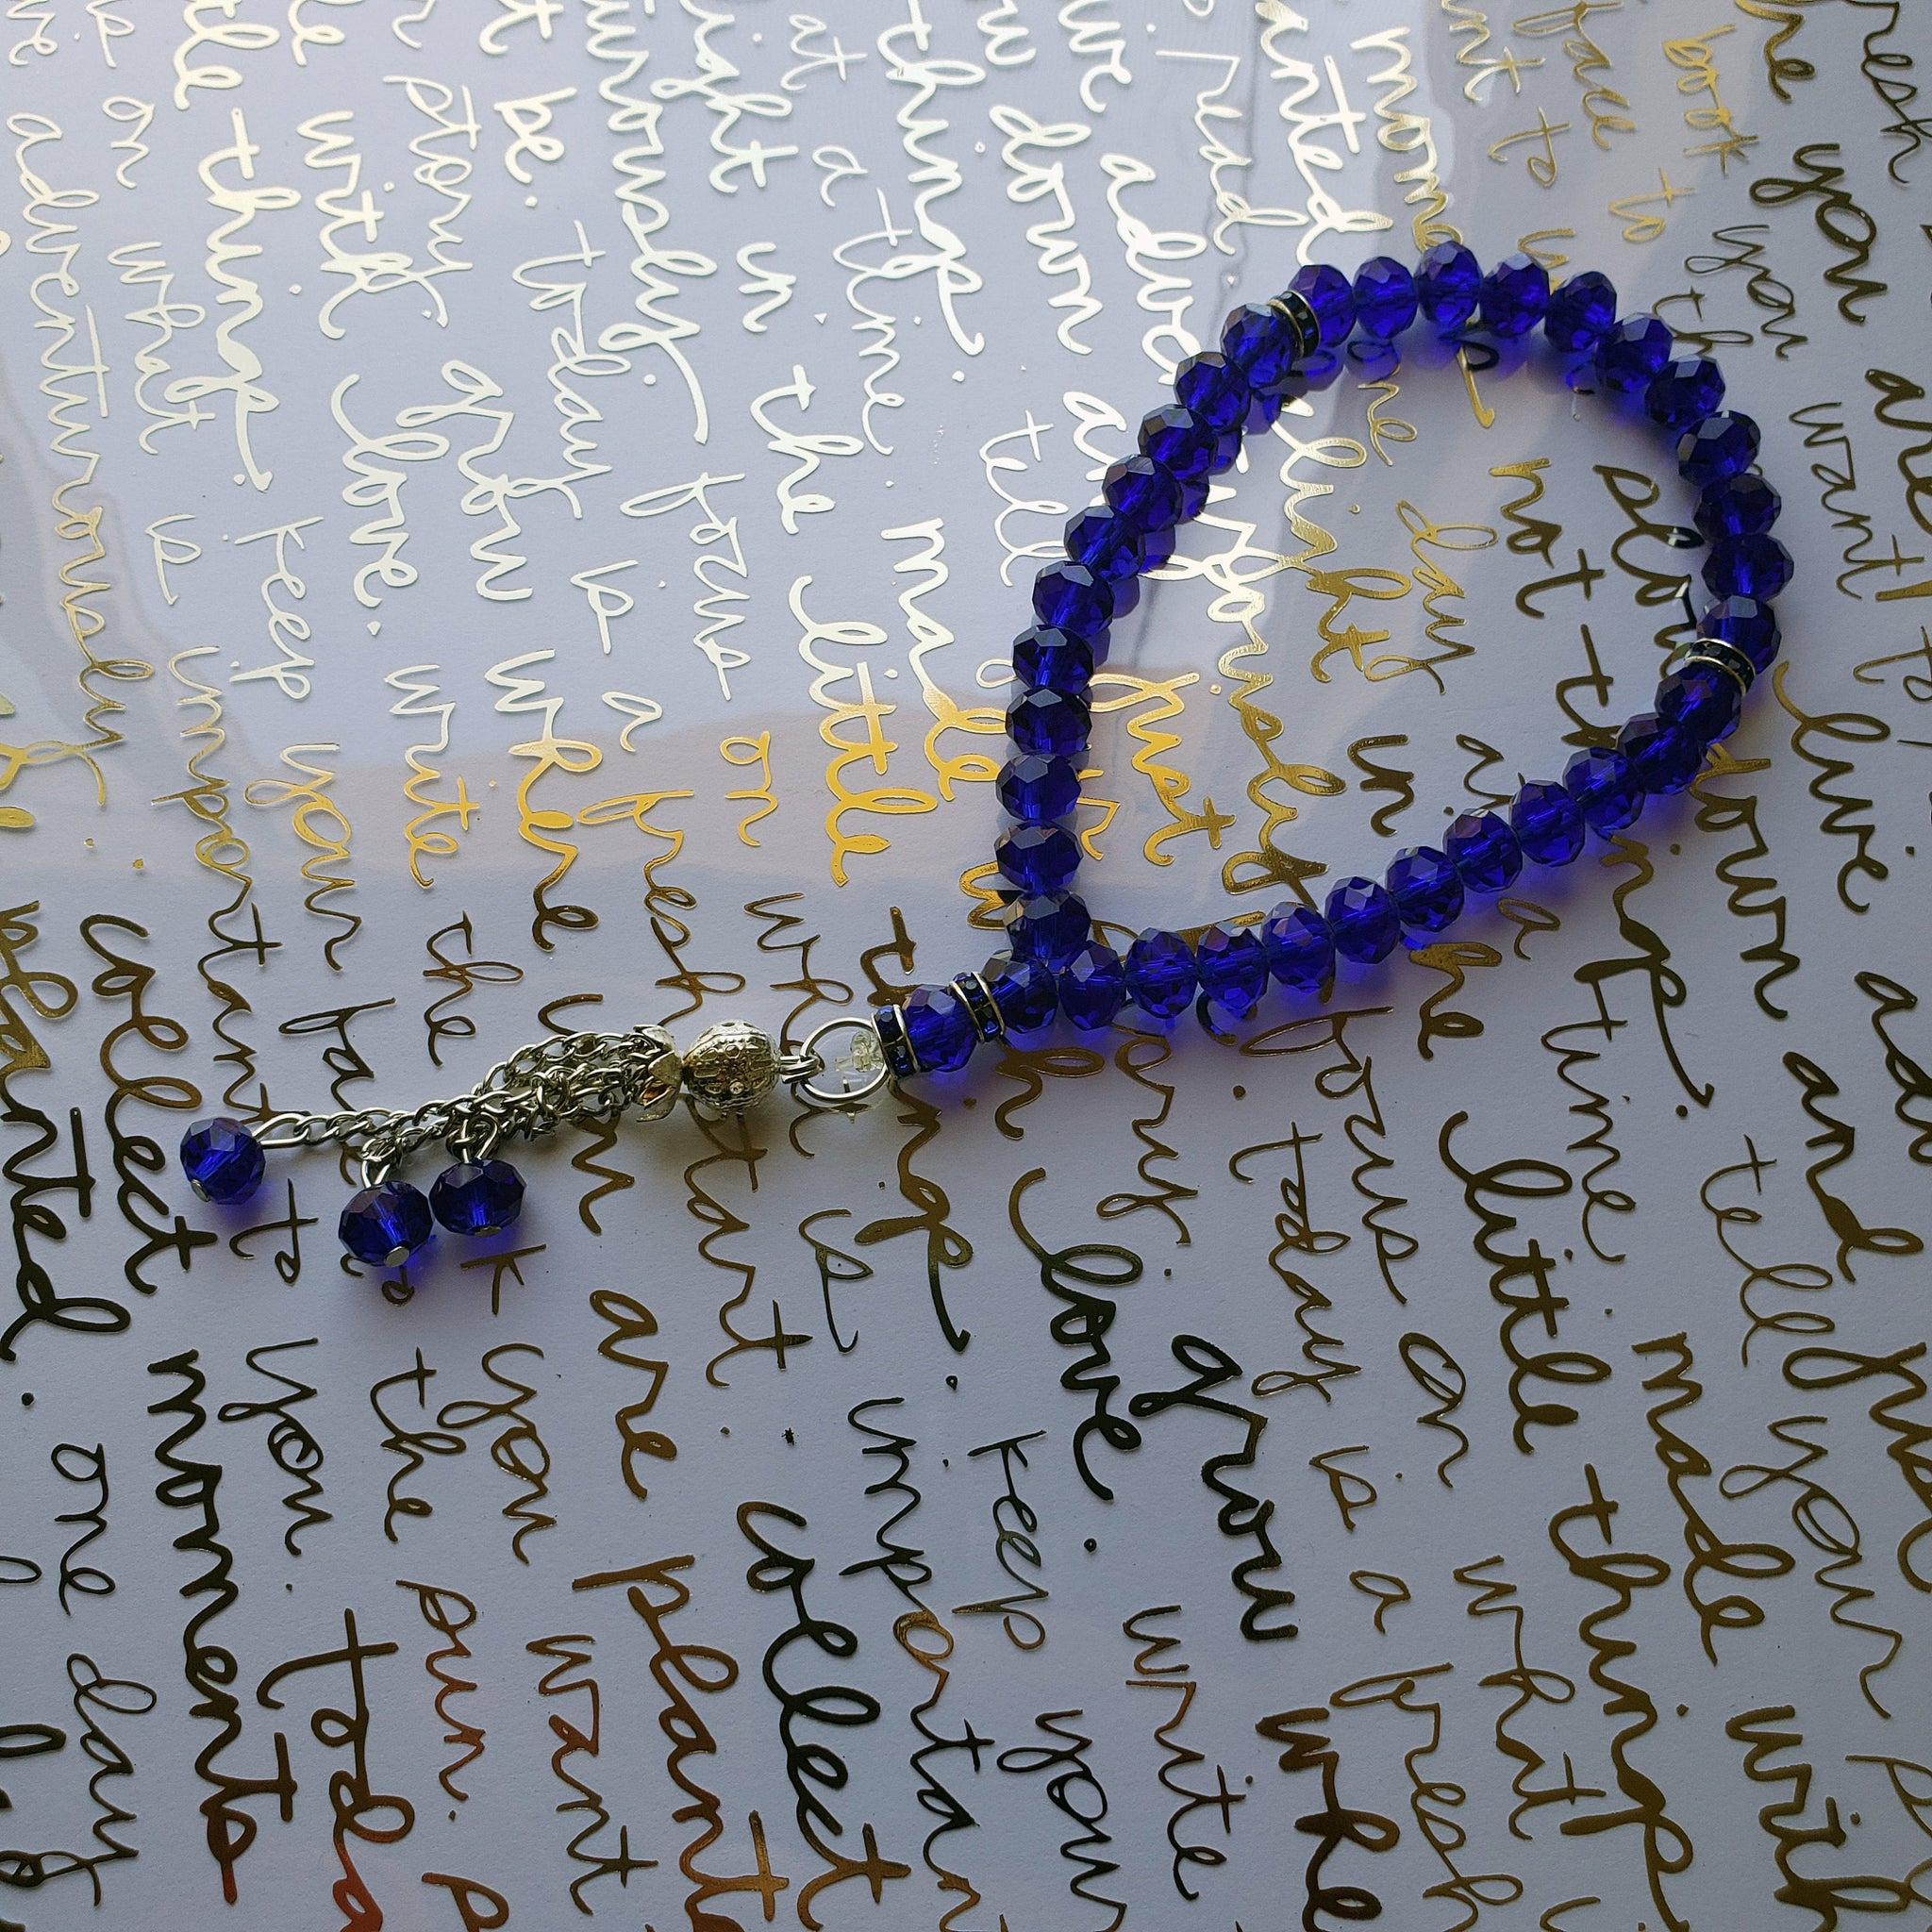 Royal blue Tasbih Prayer Beads with 33 Beads - Muslim prayer beads -Subha - misbaha – prayer - worry beads - Islamic prayer beads